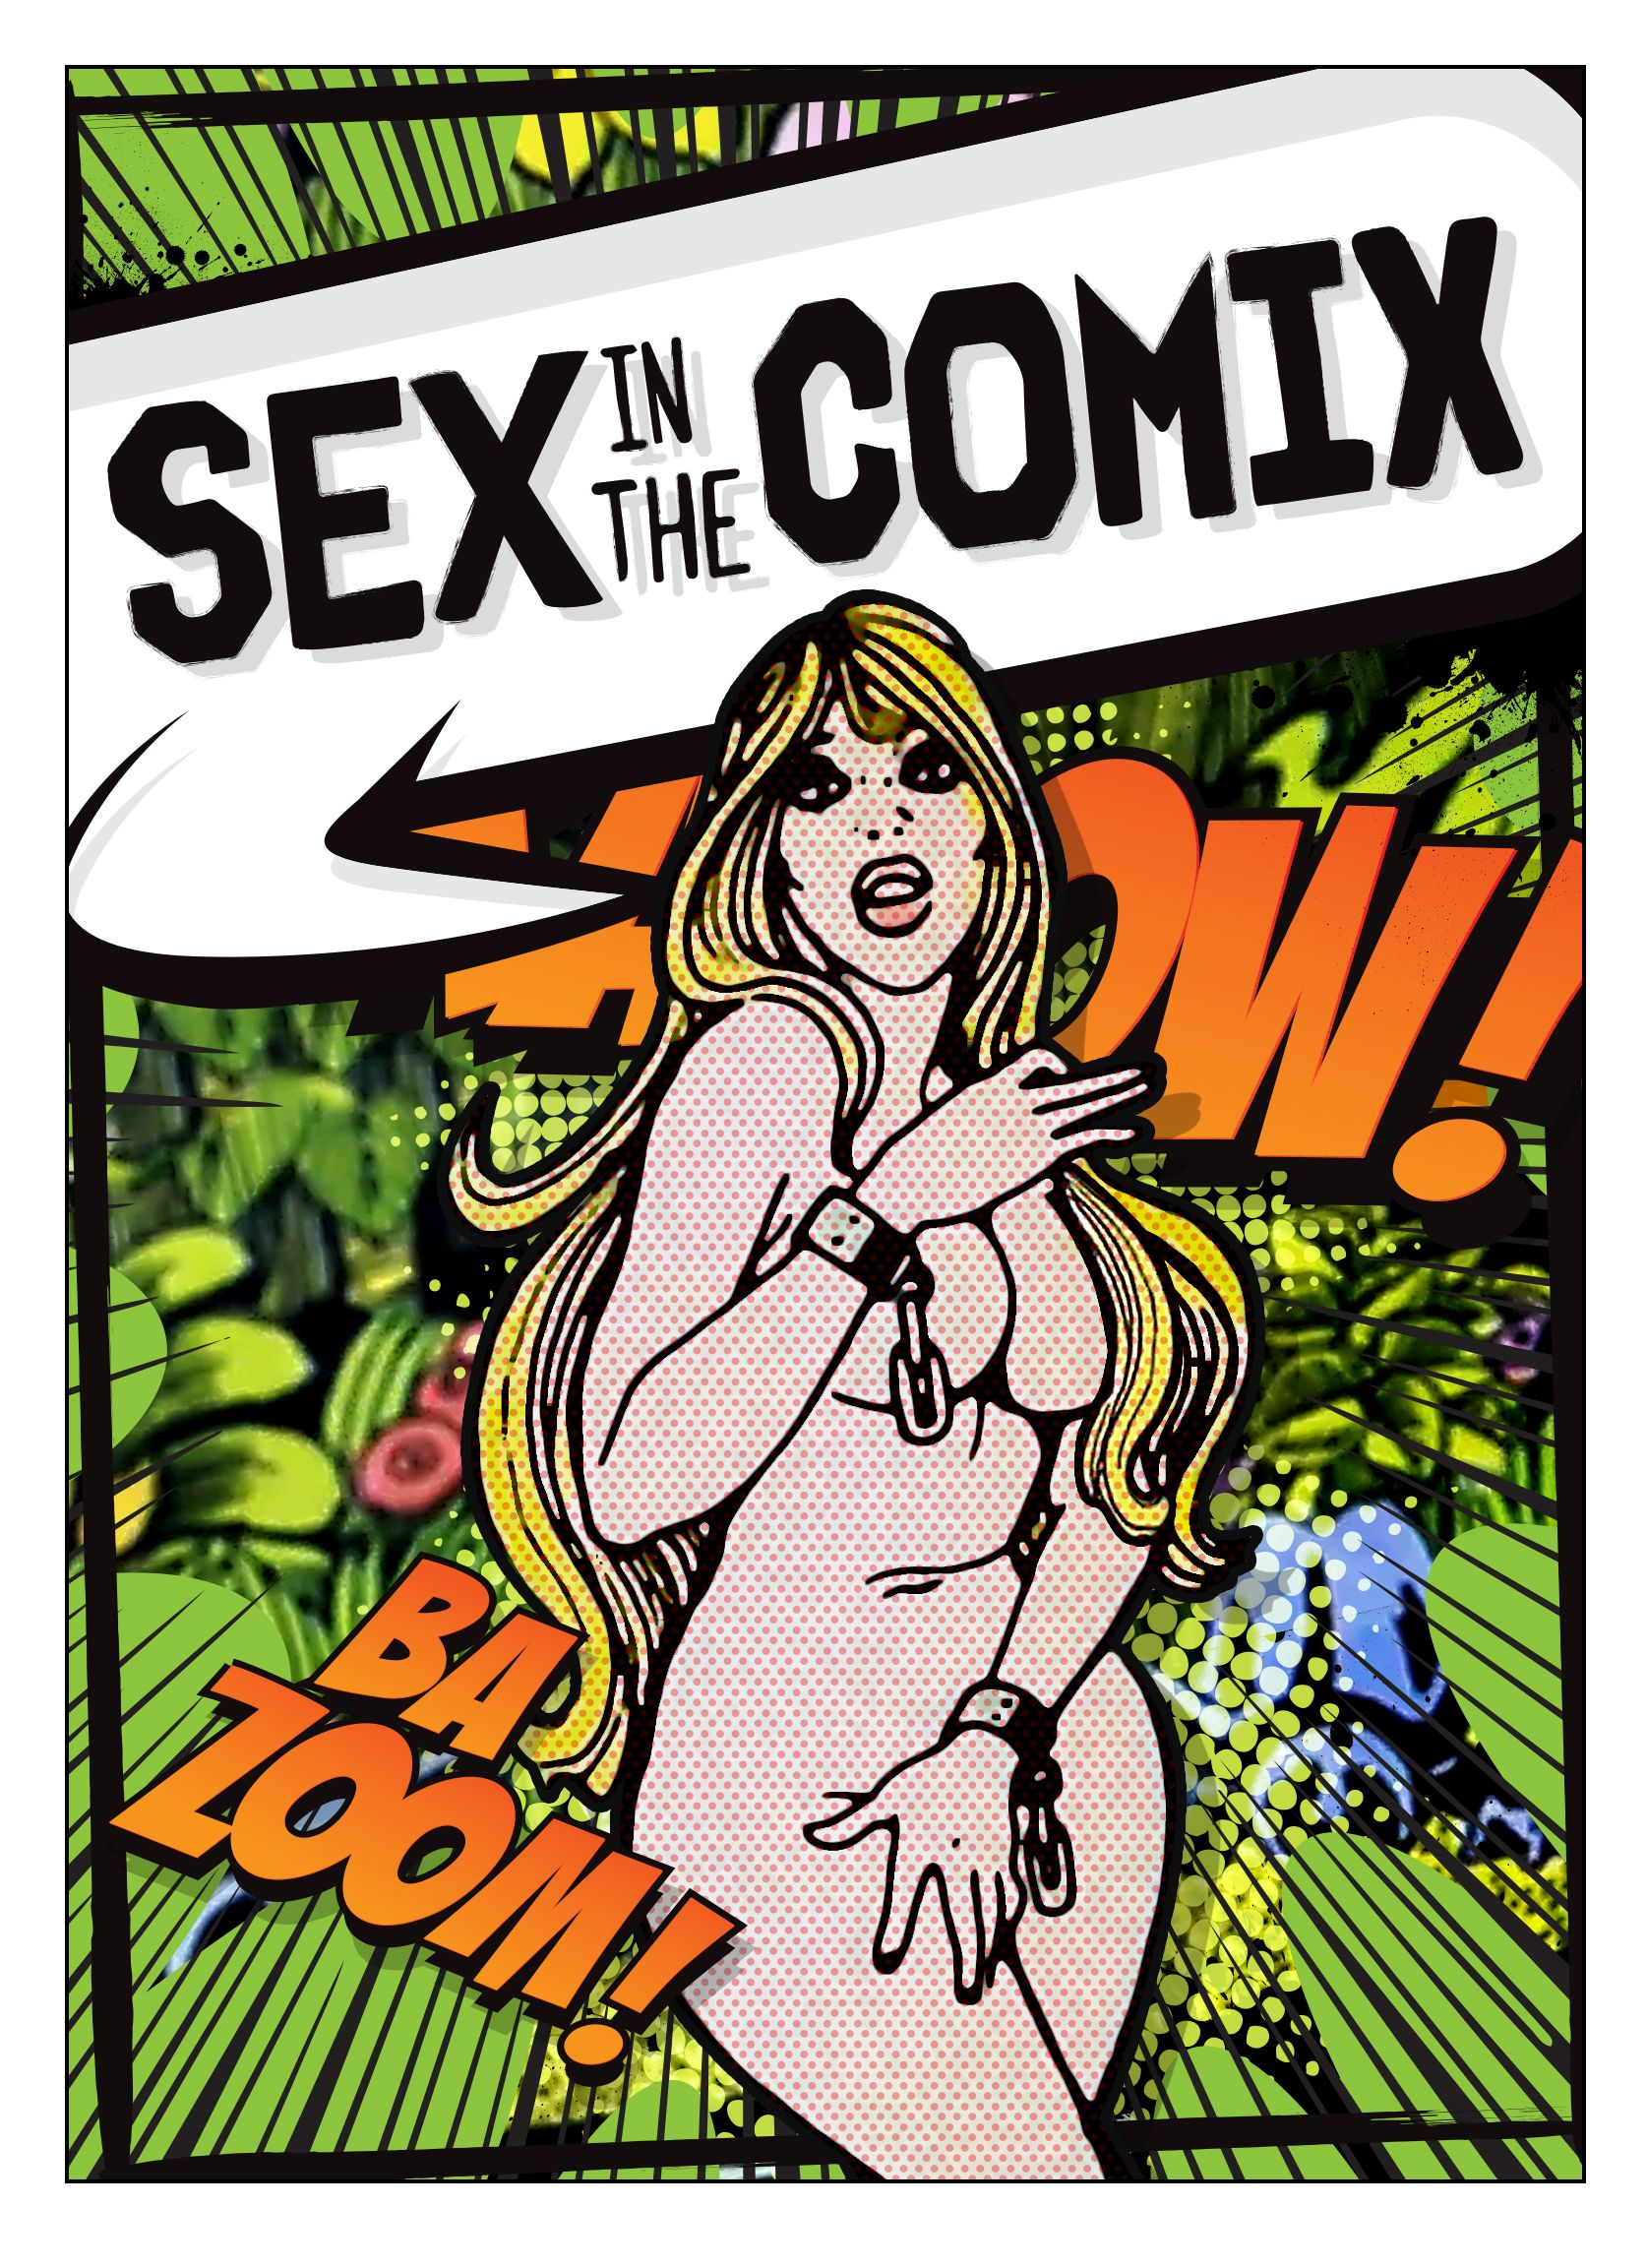 sex in the comix | documentaries january 2016 to present | pinterest